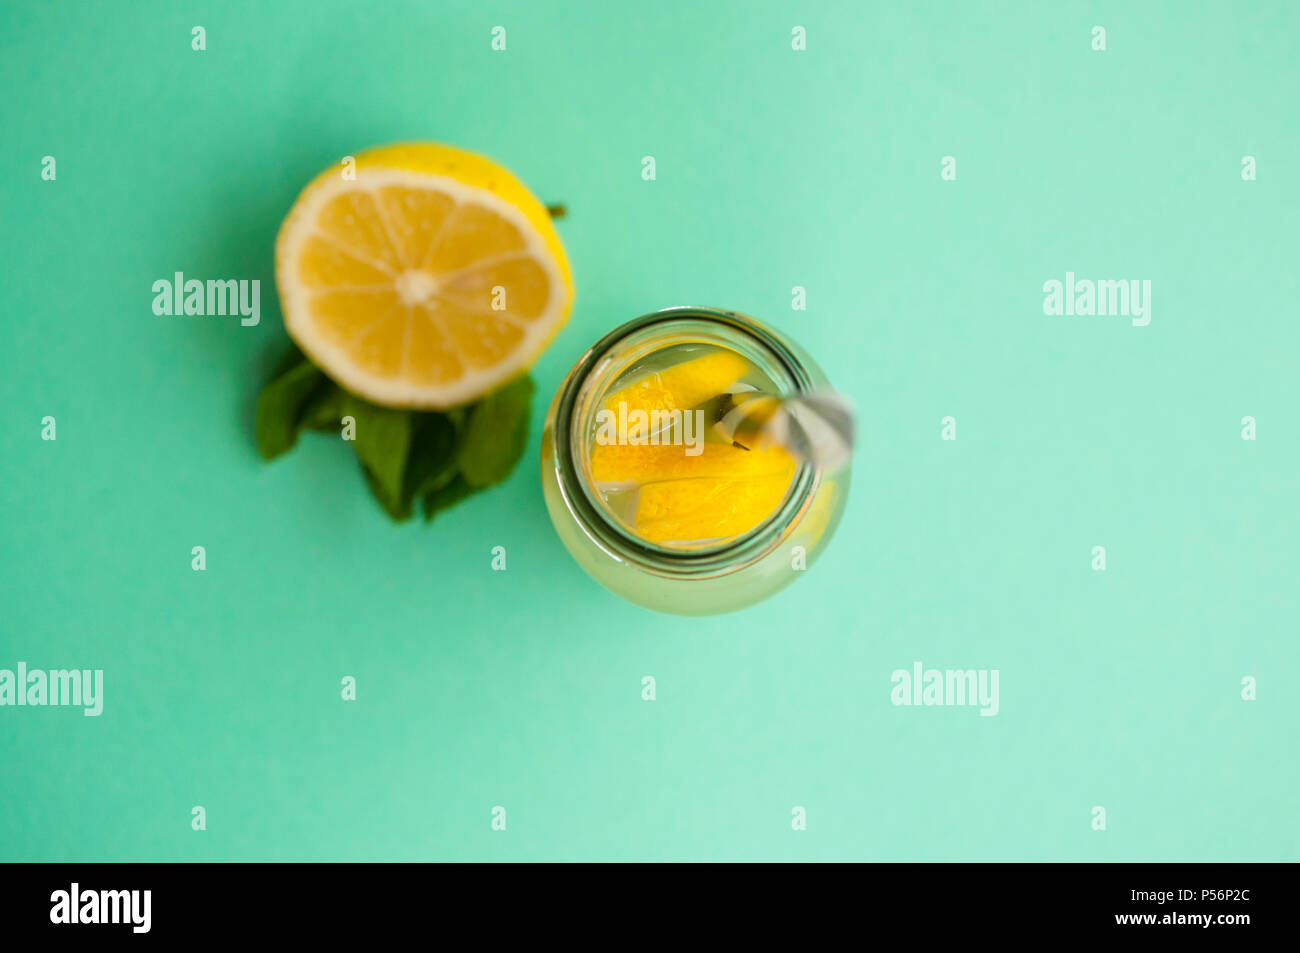 Top view of mason jar glass of lemonade or mojito with lemons and mint on turquoise background. Stock Photo